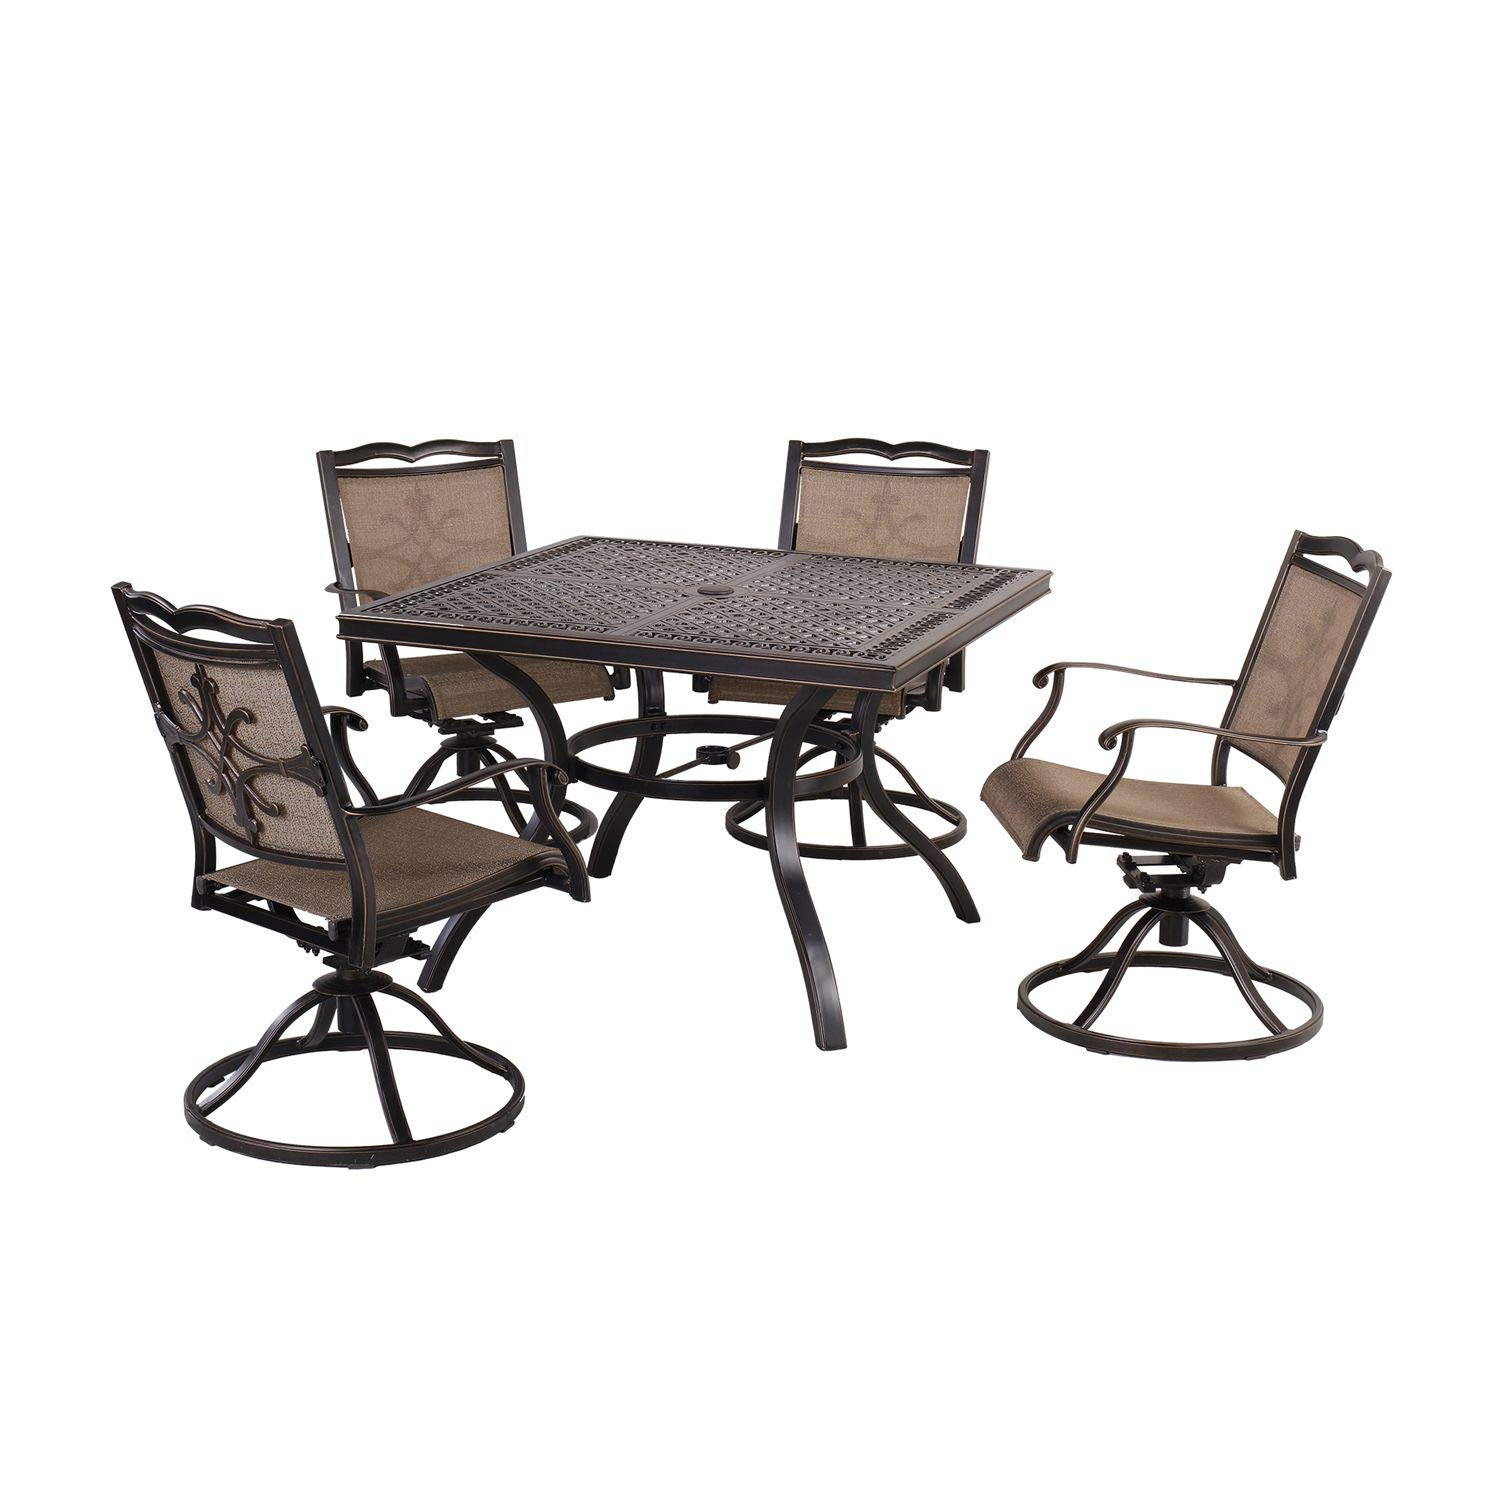 """CW Chair 5-Piece Cast Aluminum Rust-Free Patio Dining Set with 4 Outdoor Swivel Dining Chairs and 42"""" Square Dining Table, Antique Bronze Finish, with Umbrella Hole for Lawn Garden Backyard"""